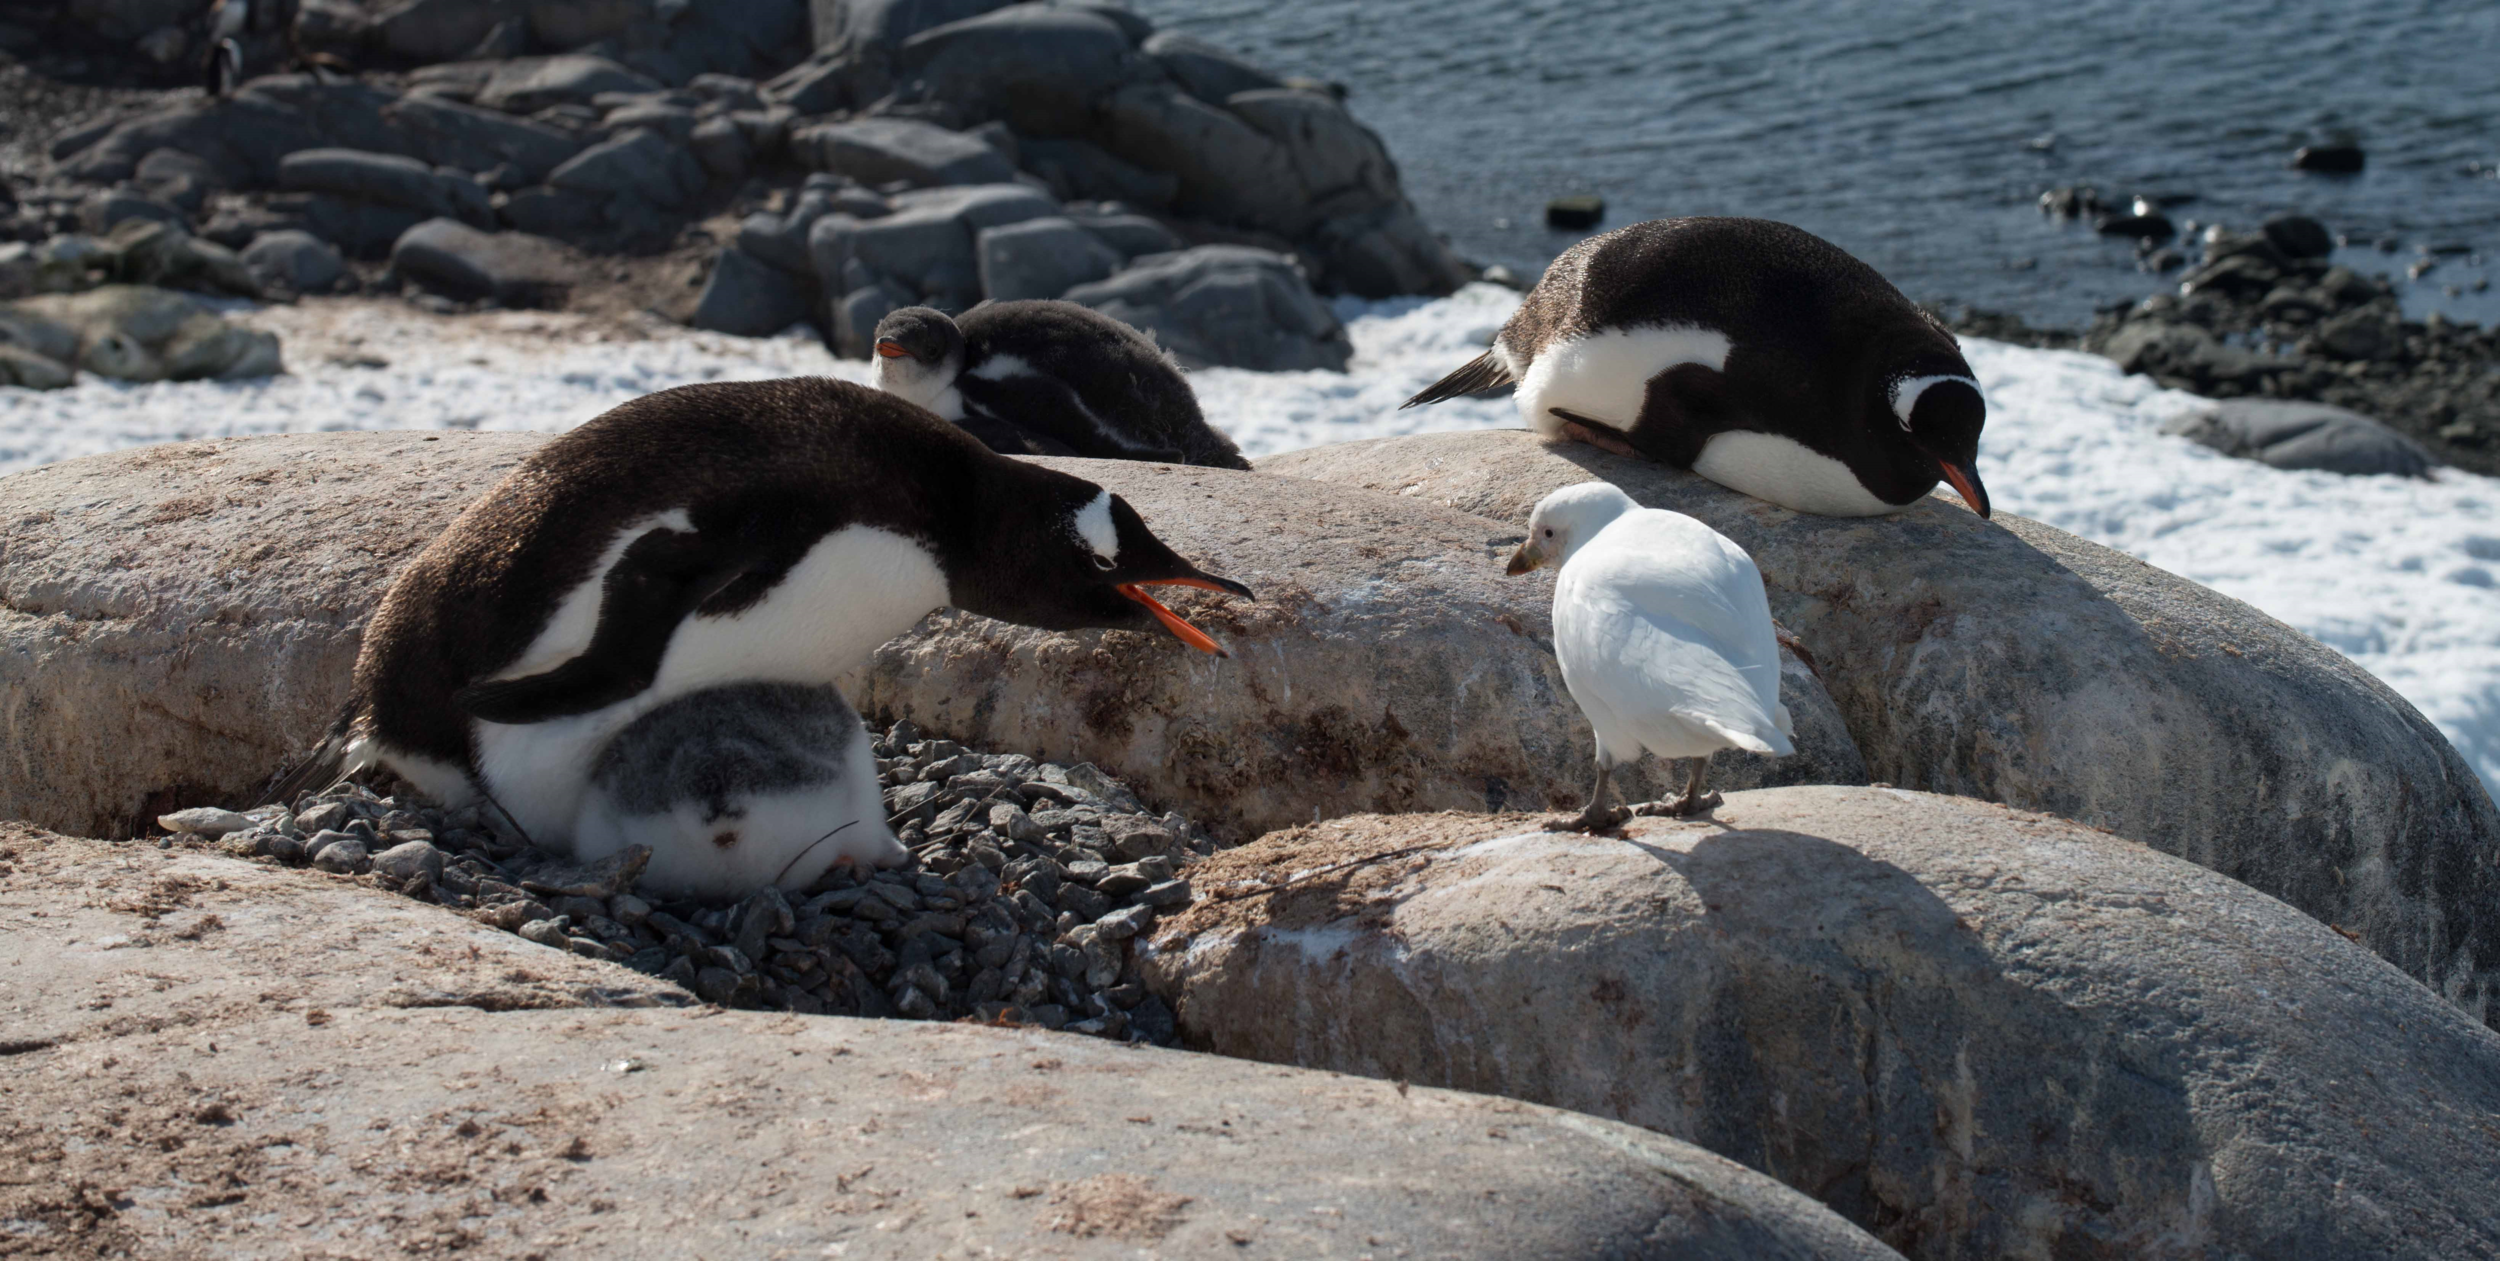 Gentoo penguins and snowy sheathbill.